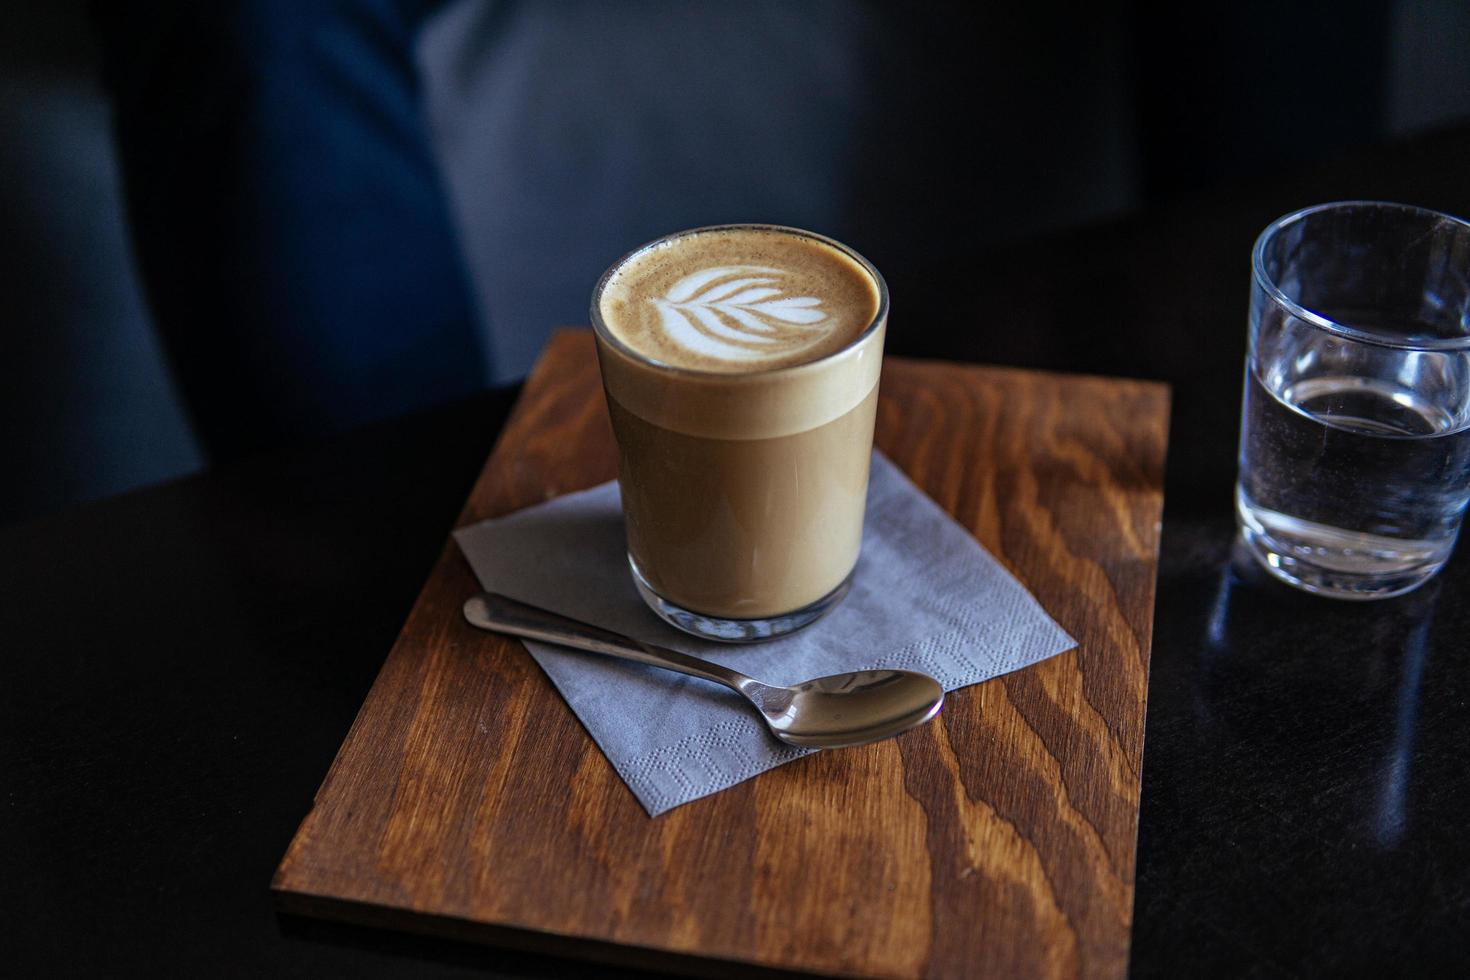 Latte in tall clear glass photo